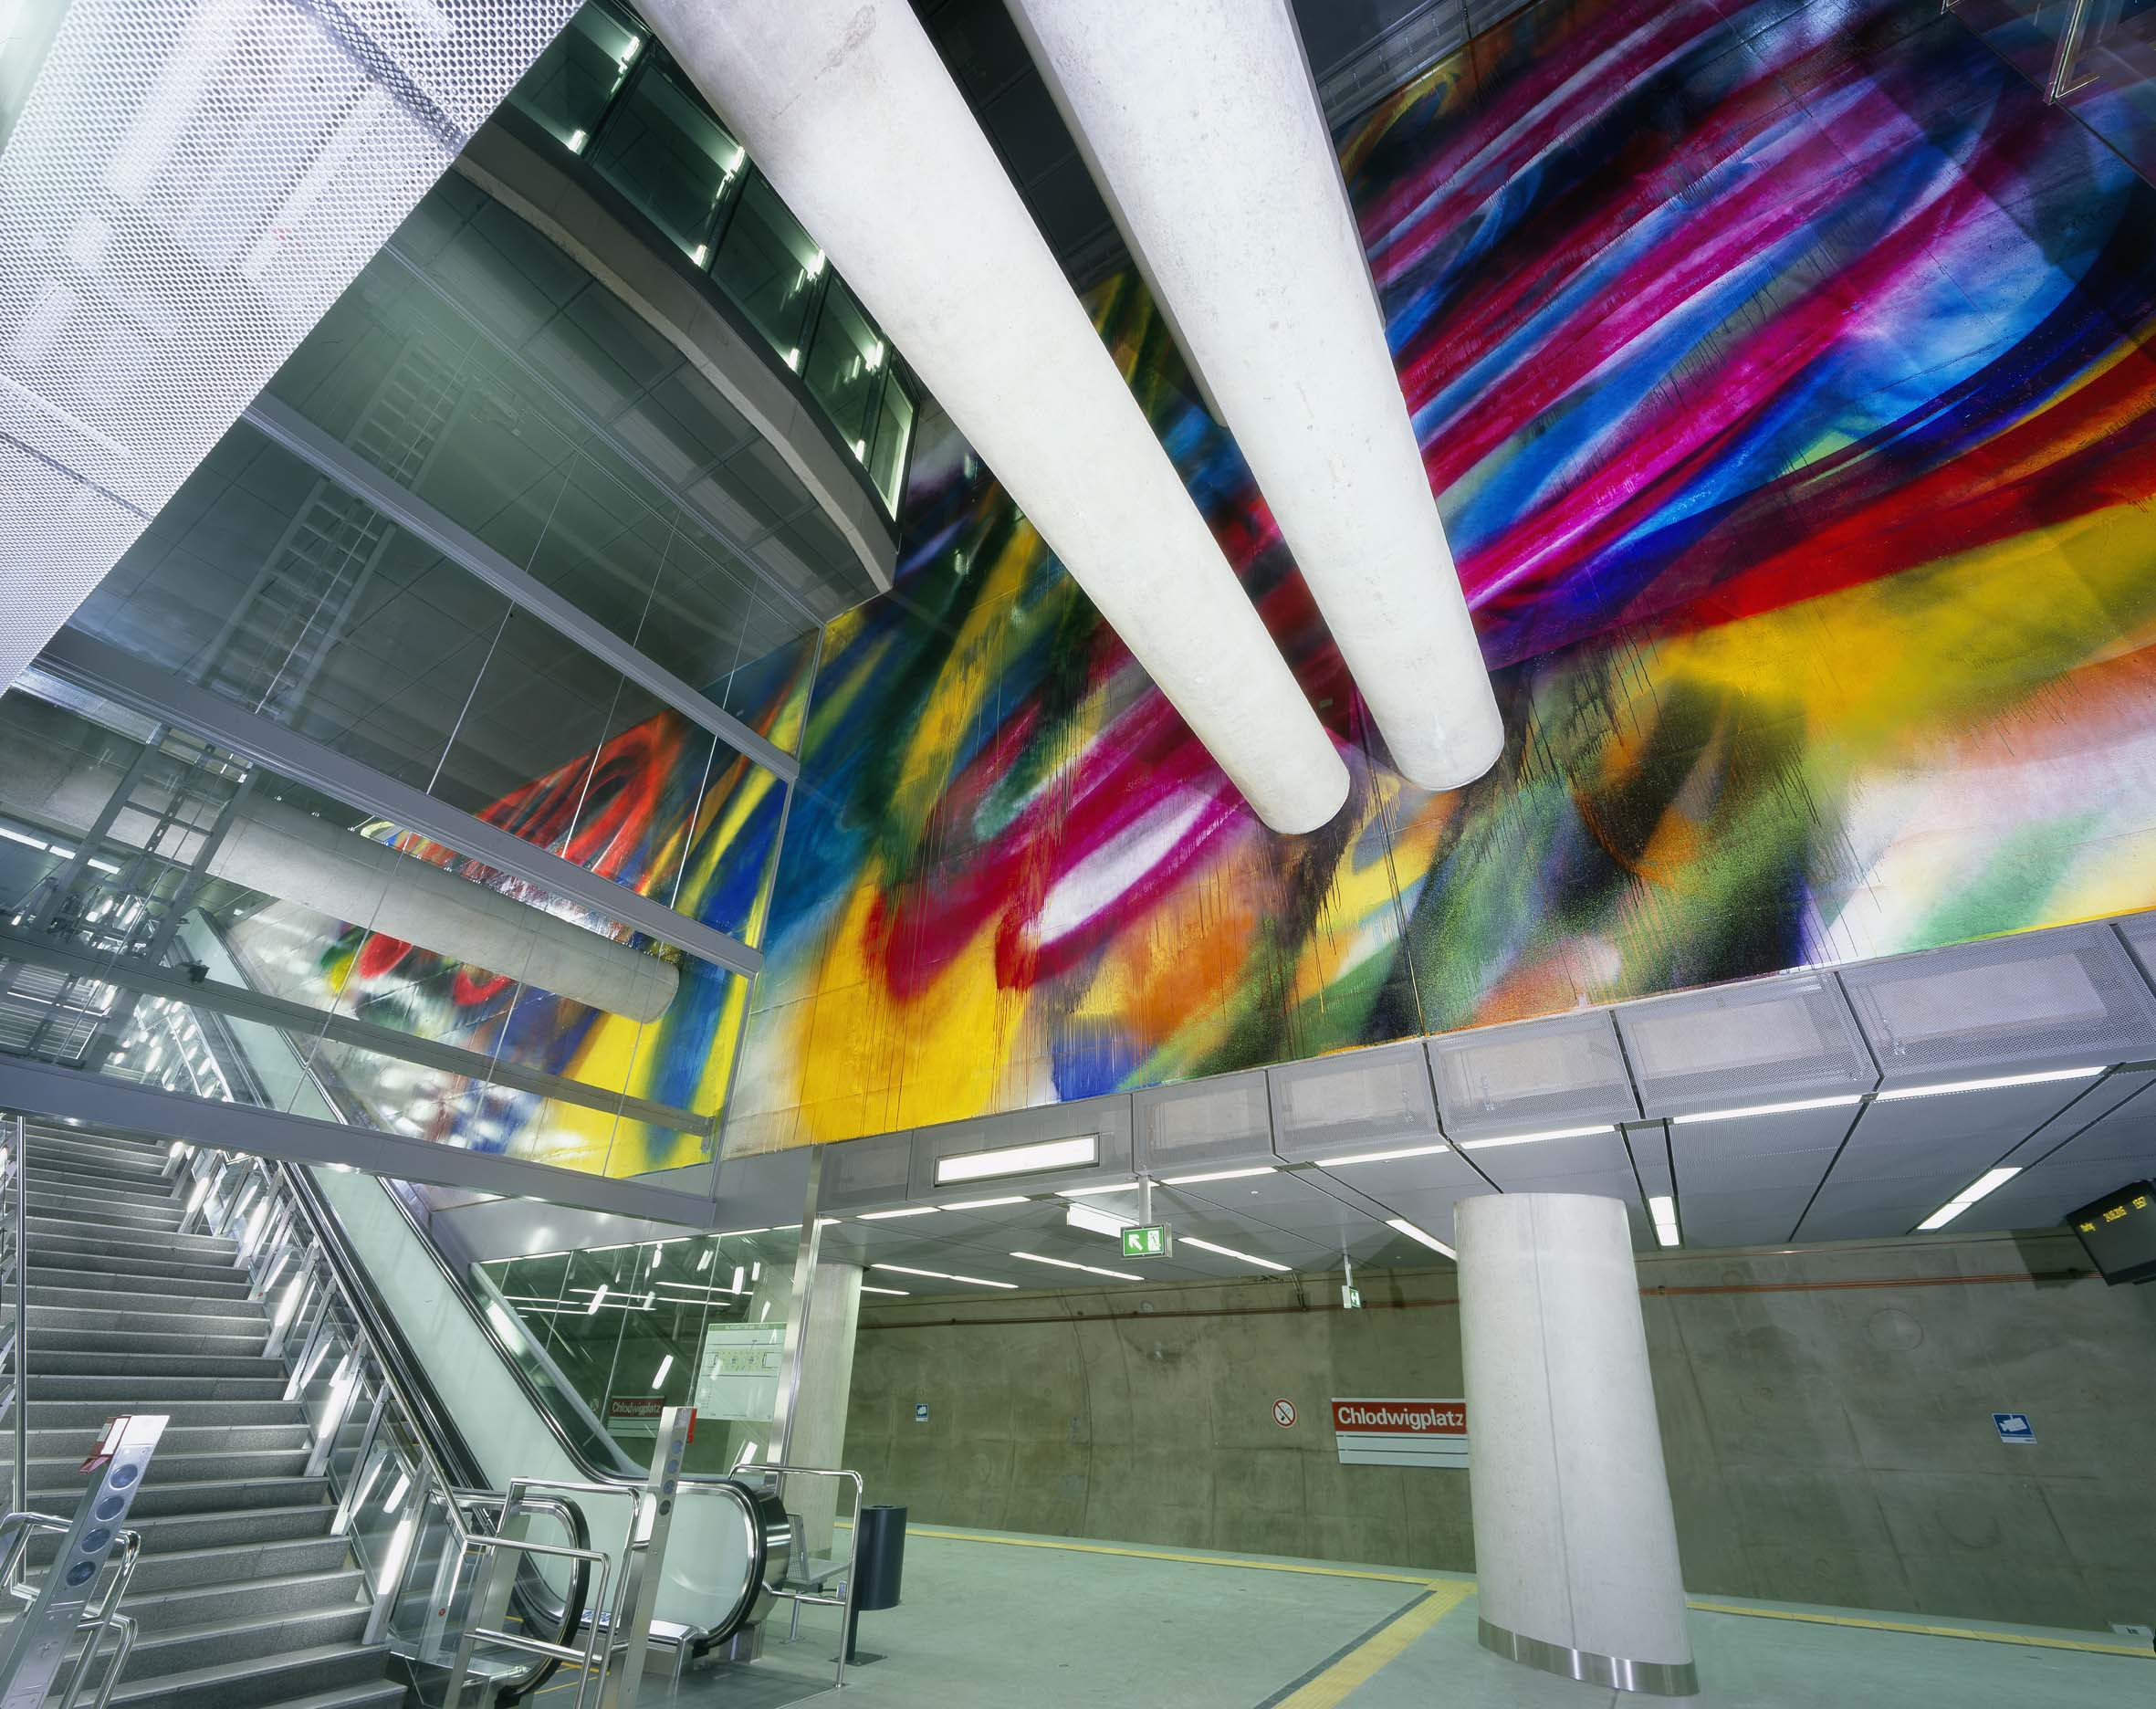 Katharina Grosse transforms Chlodwigplatz Transport Center in Cologne